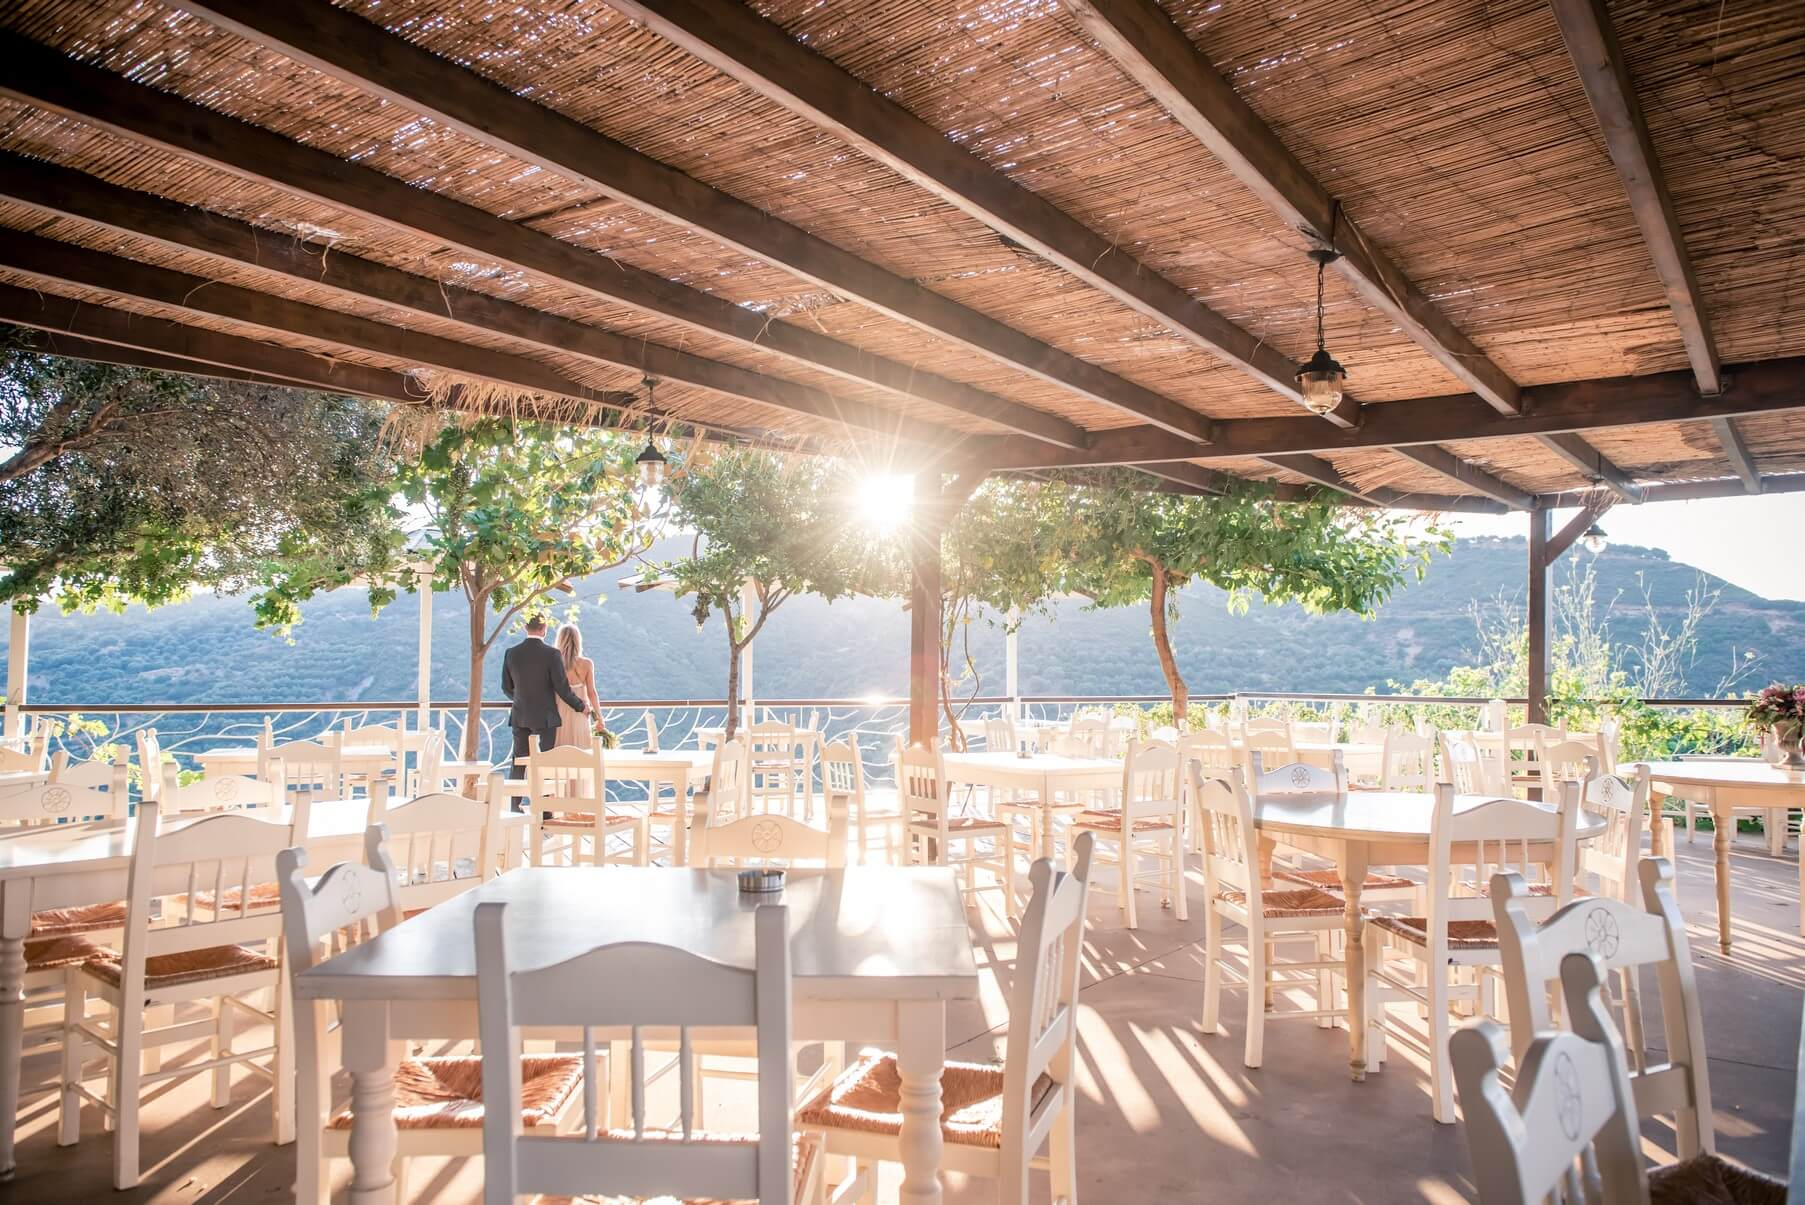 Chania Wedding - The Bridal Consultant